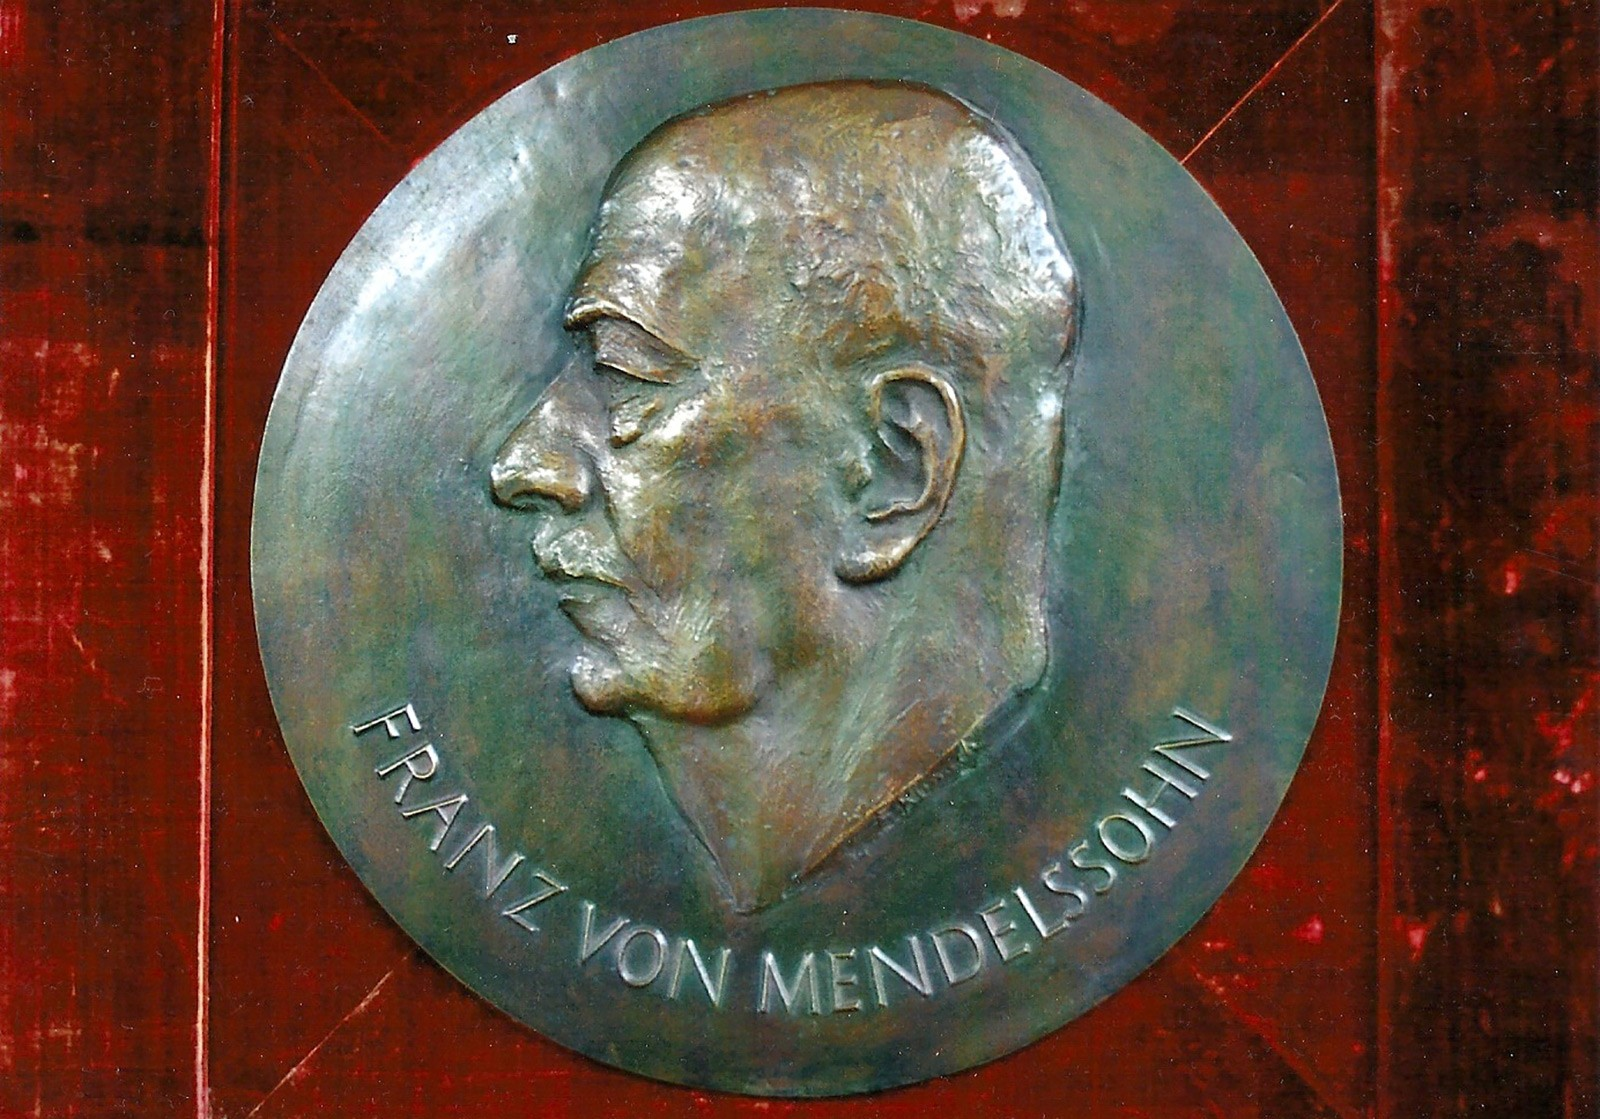 The Franz von Mendelssohn Medal issued by the Association of German Chambers of Commerce.  Fritz Klimsch, 1931. Image: Mendelssohn-Gesellschaft.